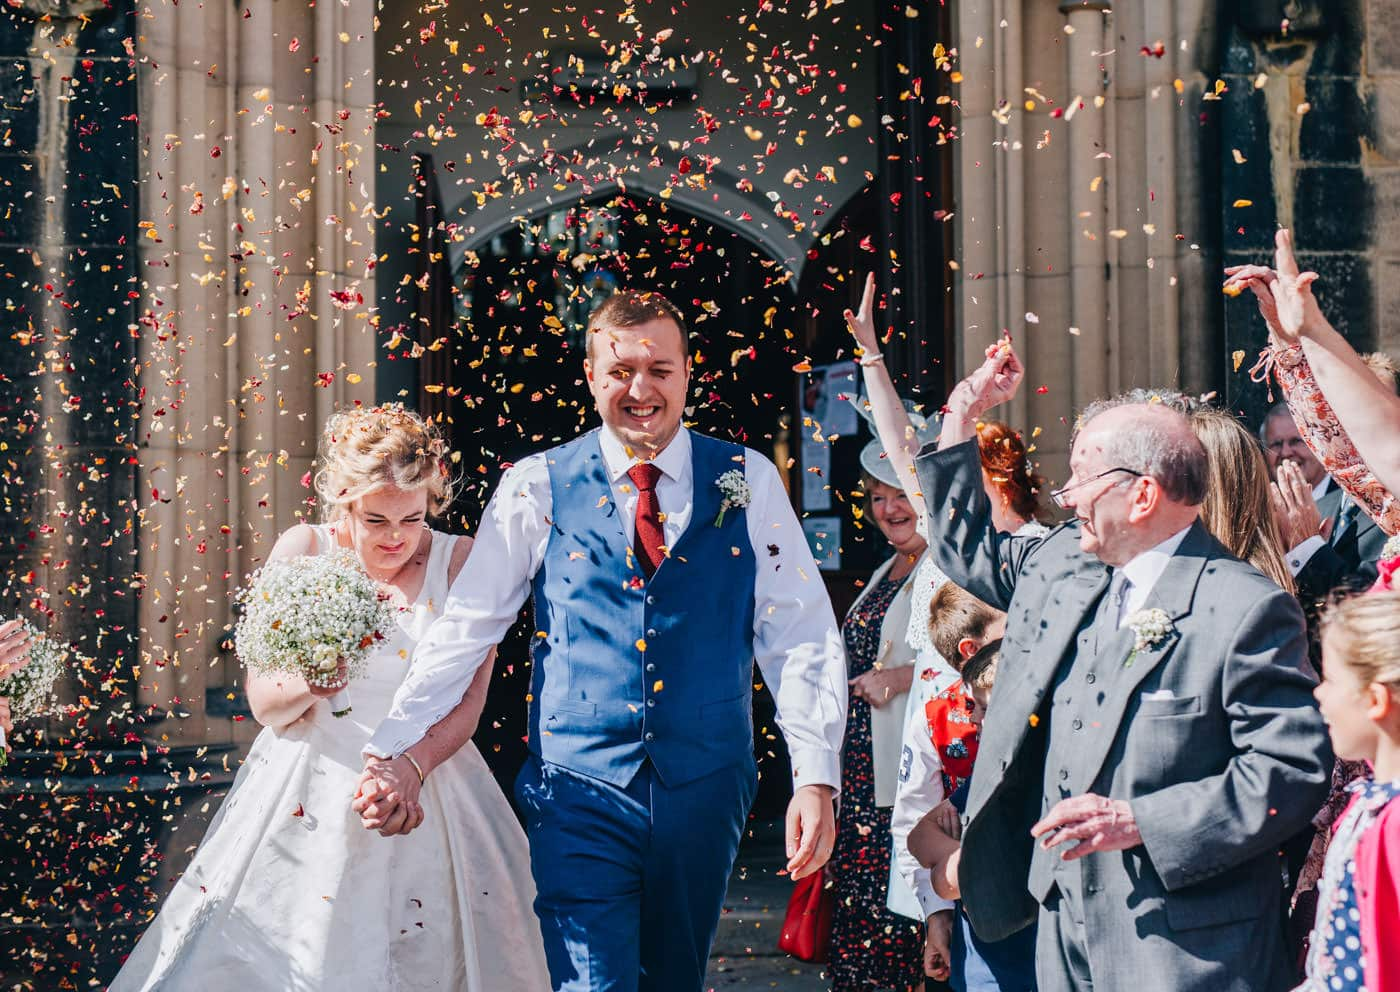 fun wedding pictures - bride and groom confetti